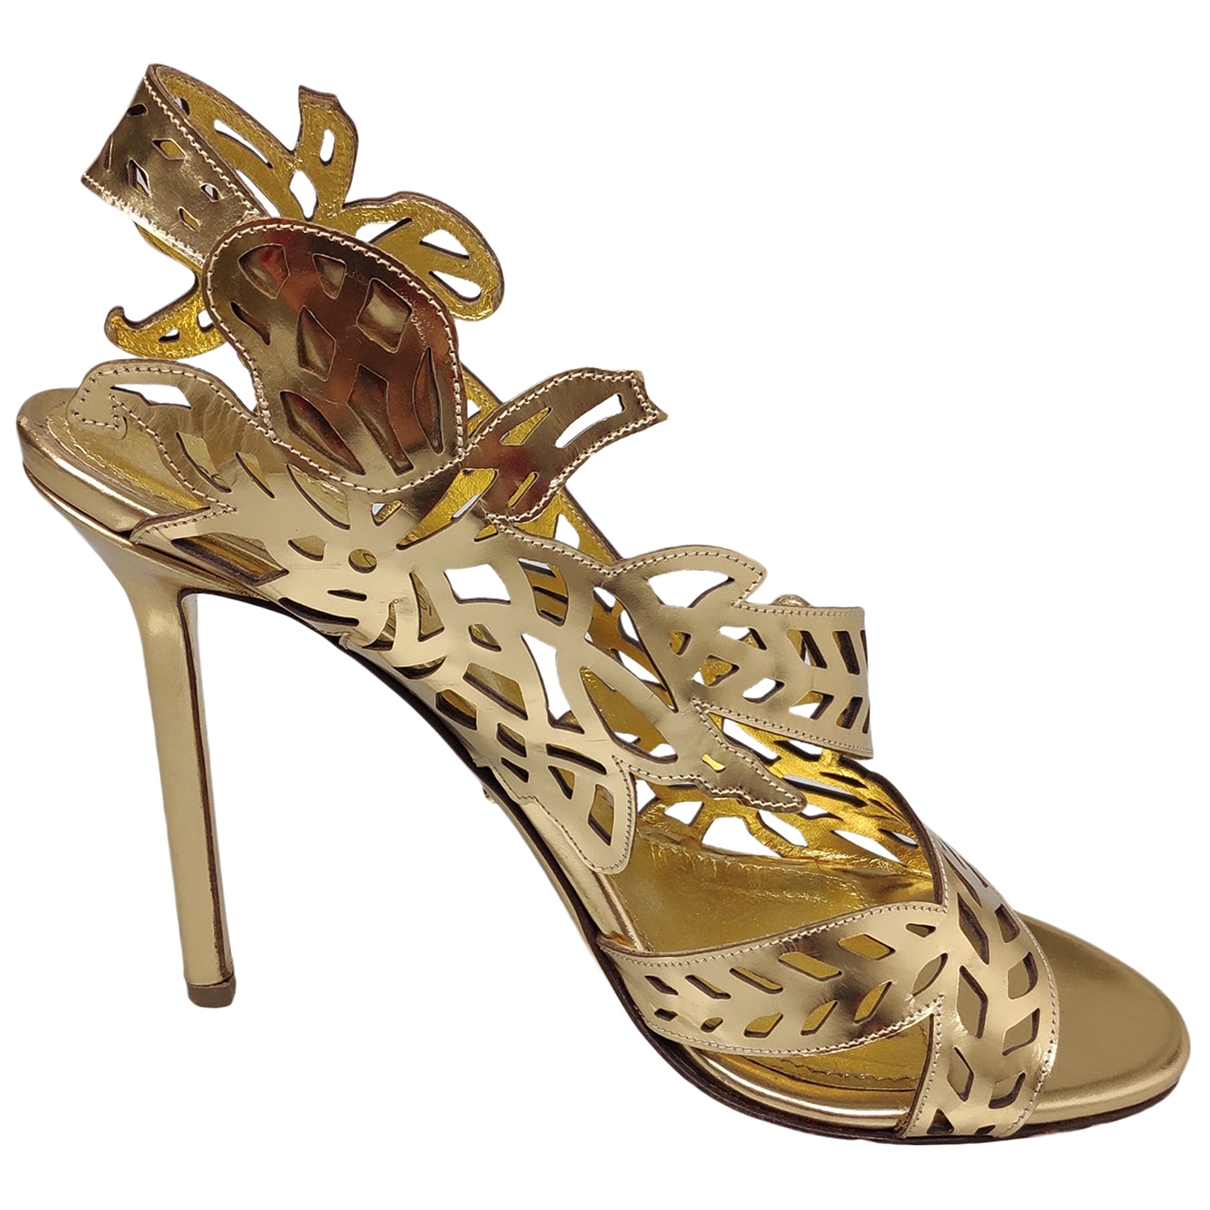 Sergio Rossi \N Gold Patent leather Sandals for Women 39 EU